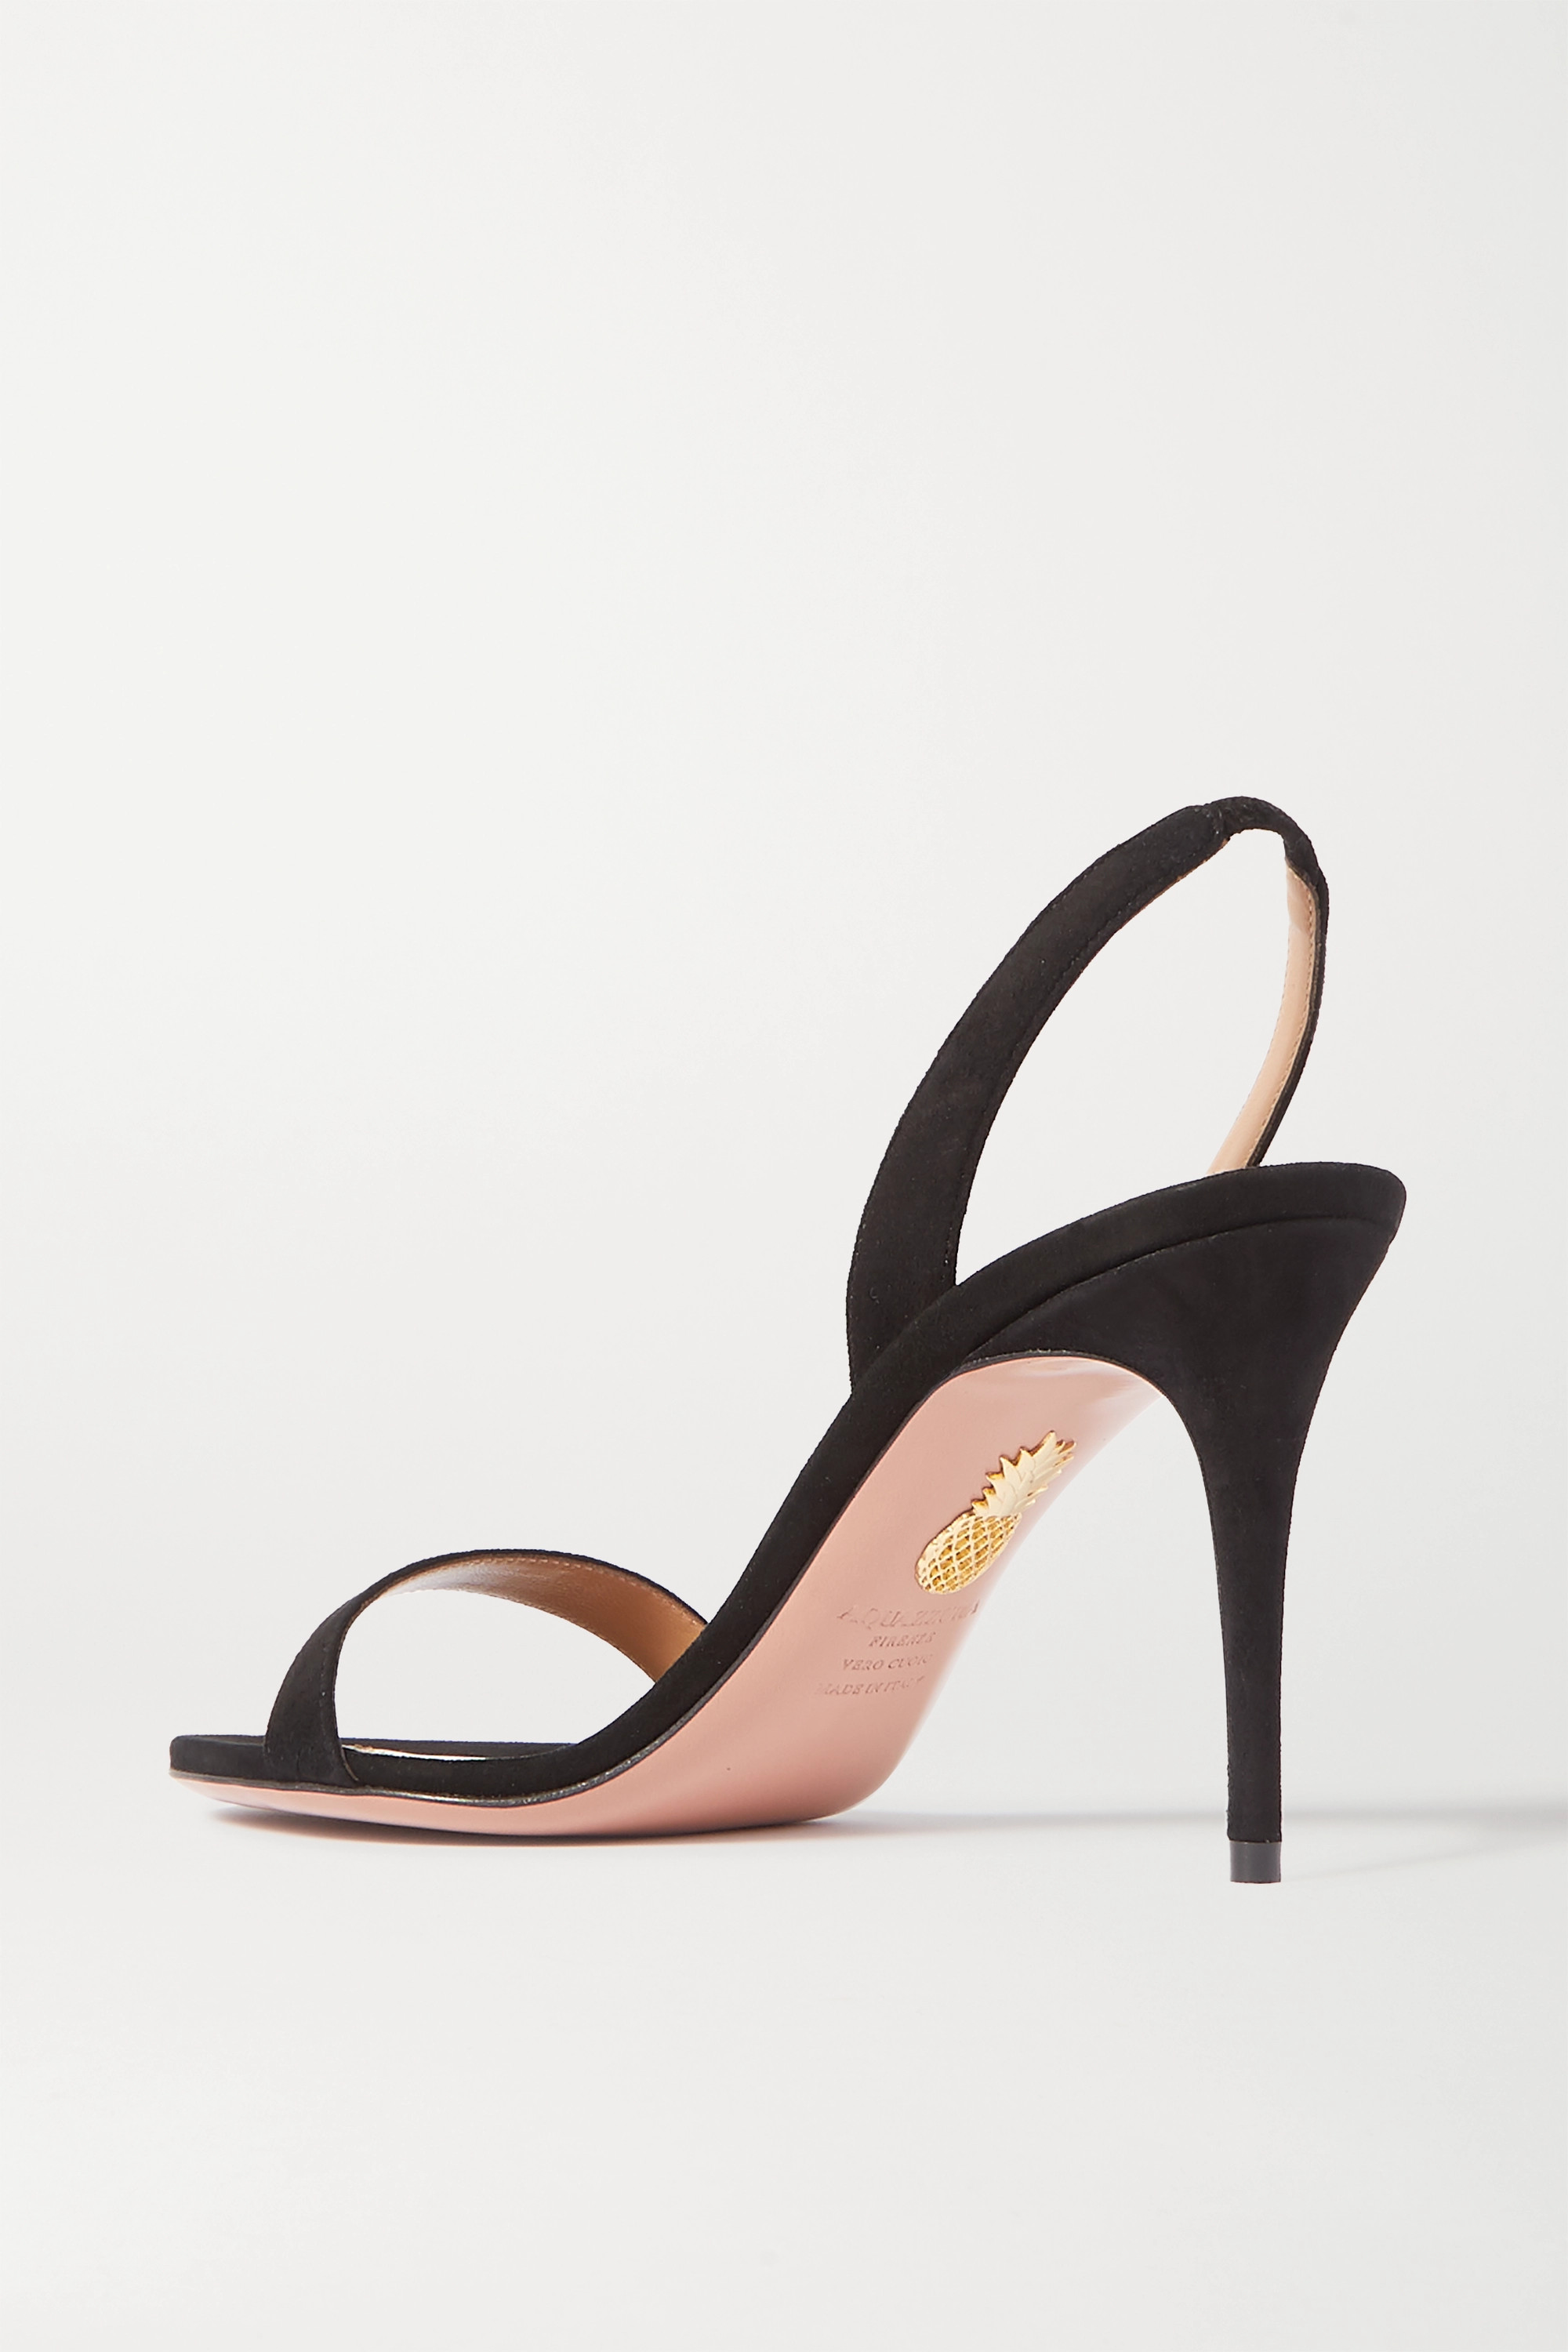 Aquazzura So Nude 85 suede slingback sandals